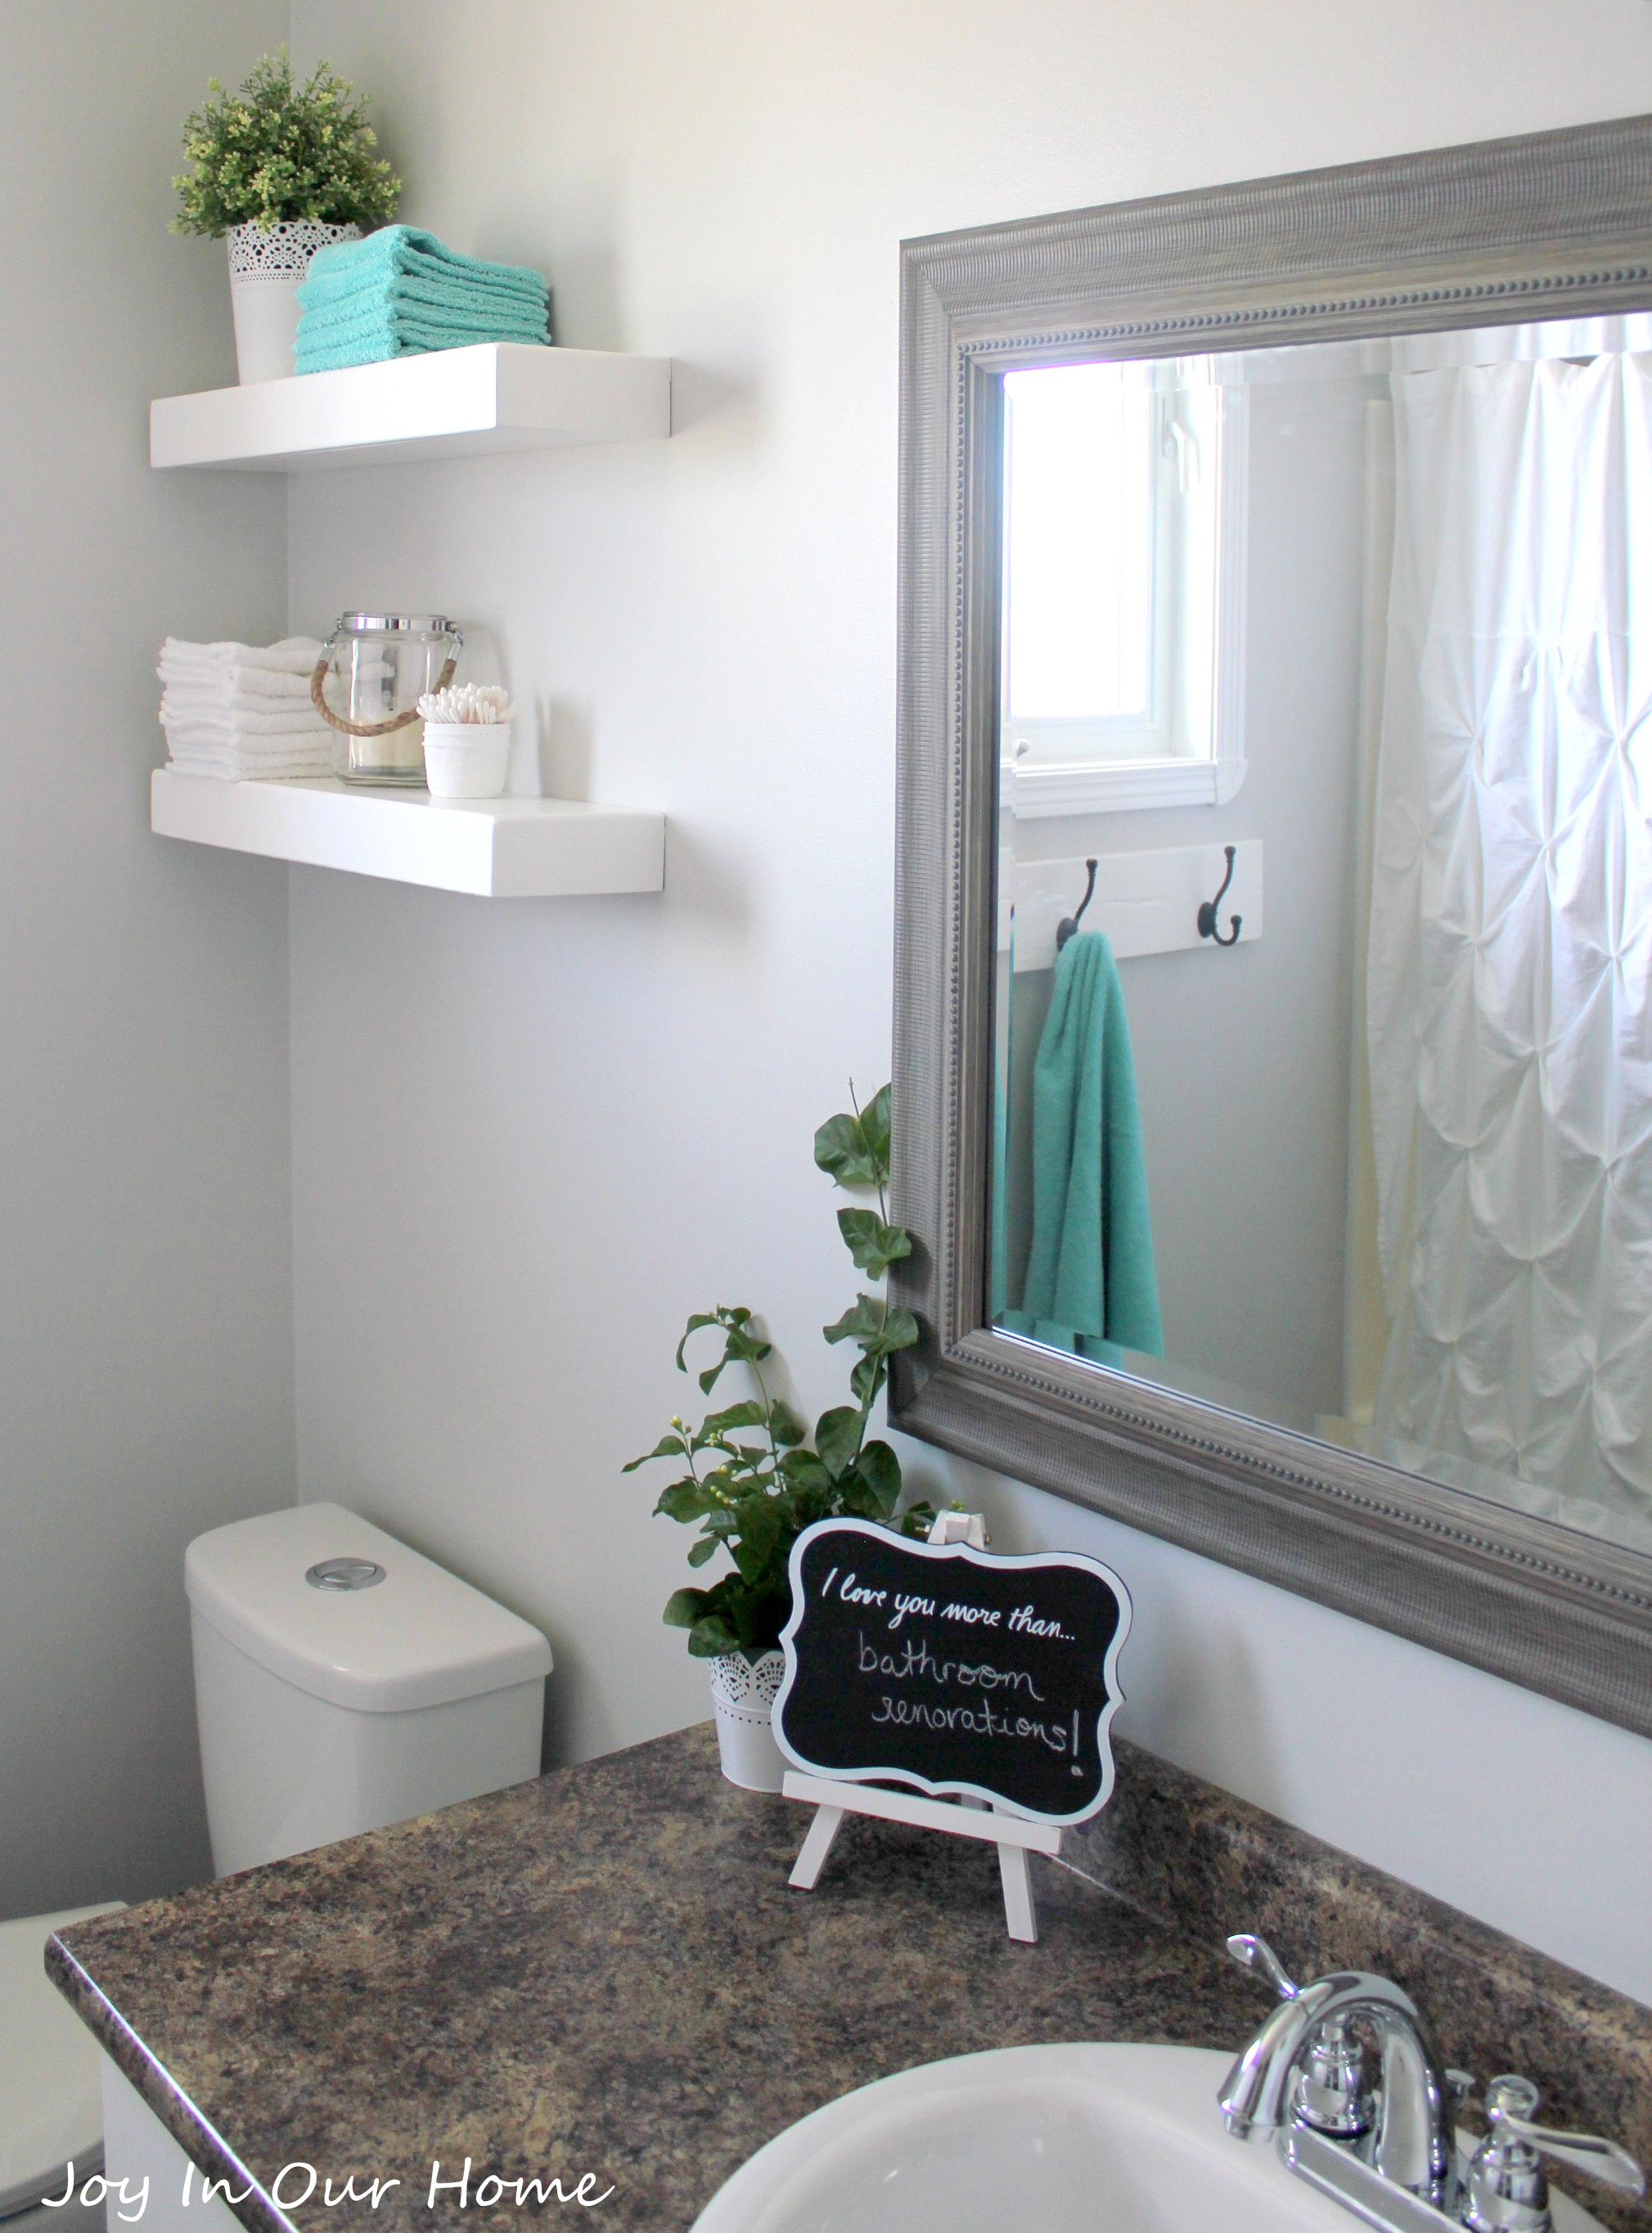 5 Decorating Ideas For Small Bathrooms: Our Bathroom Makeover Product Source